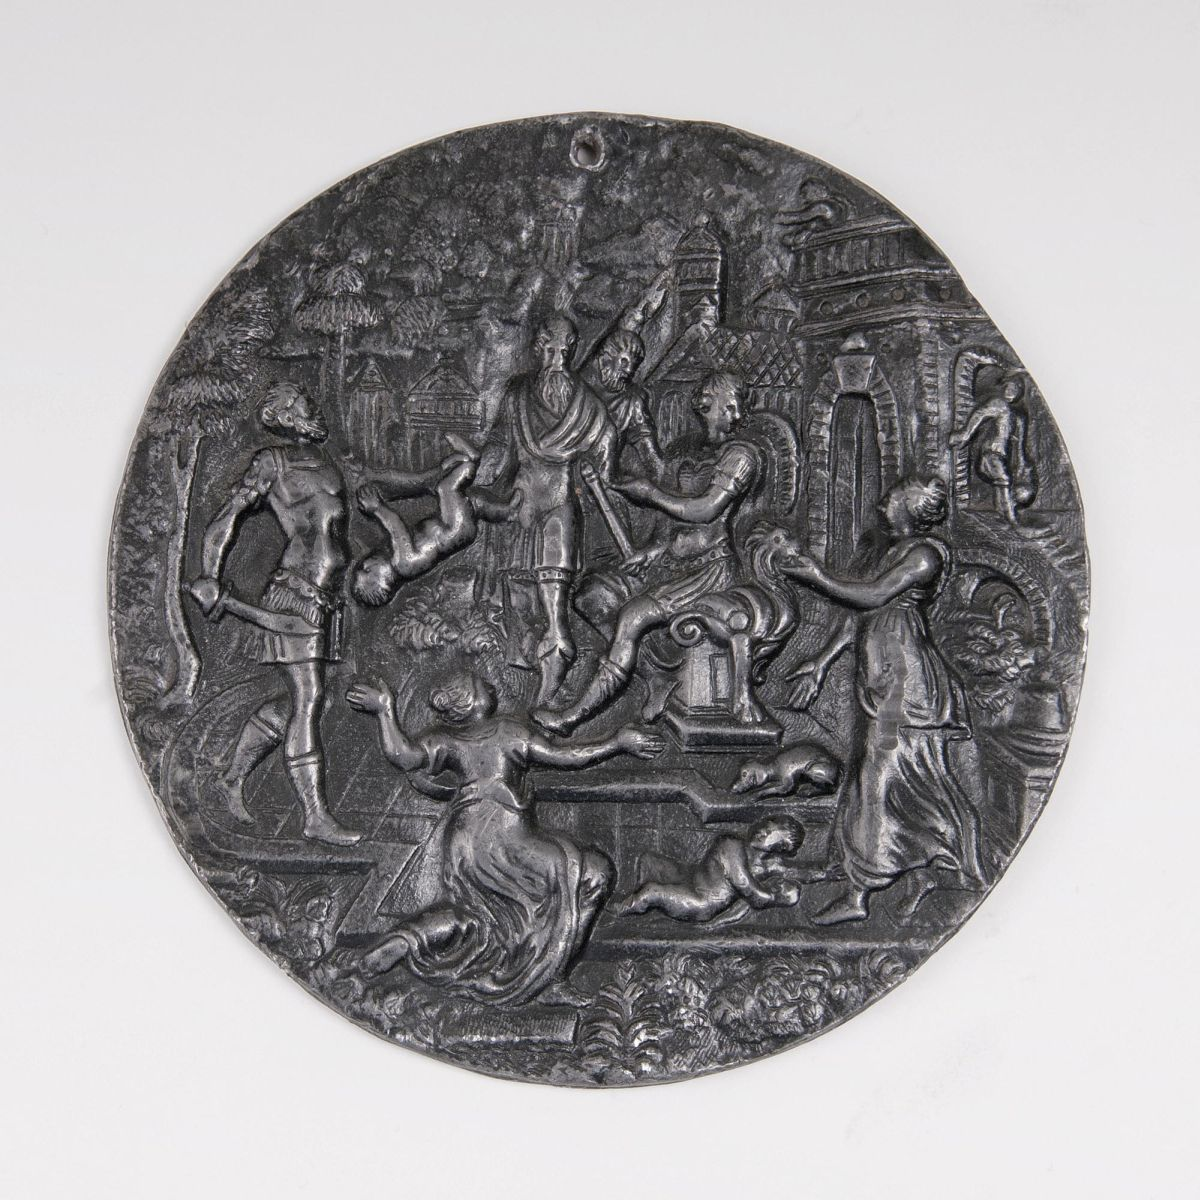 A Reliefed Plaque 'The Judgment of Solomon'